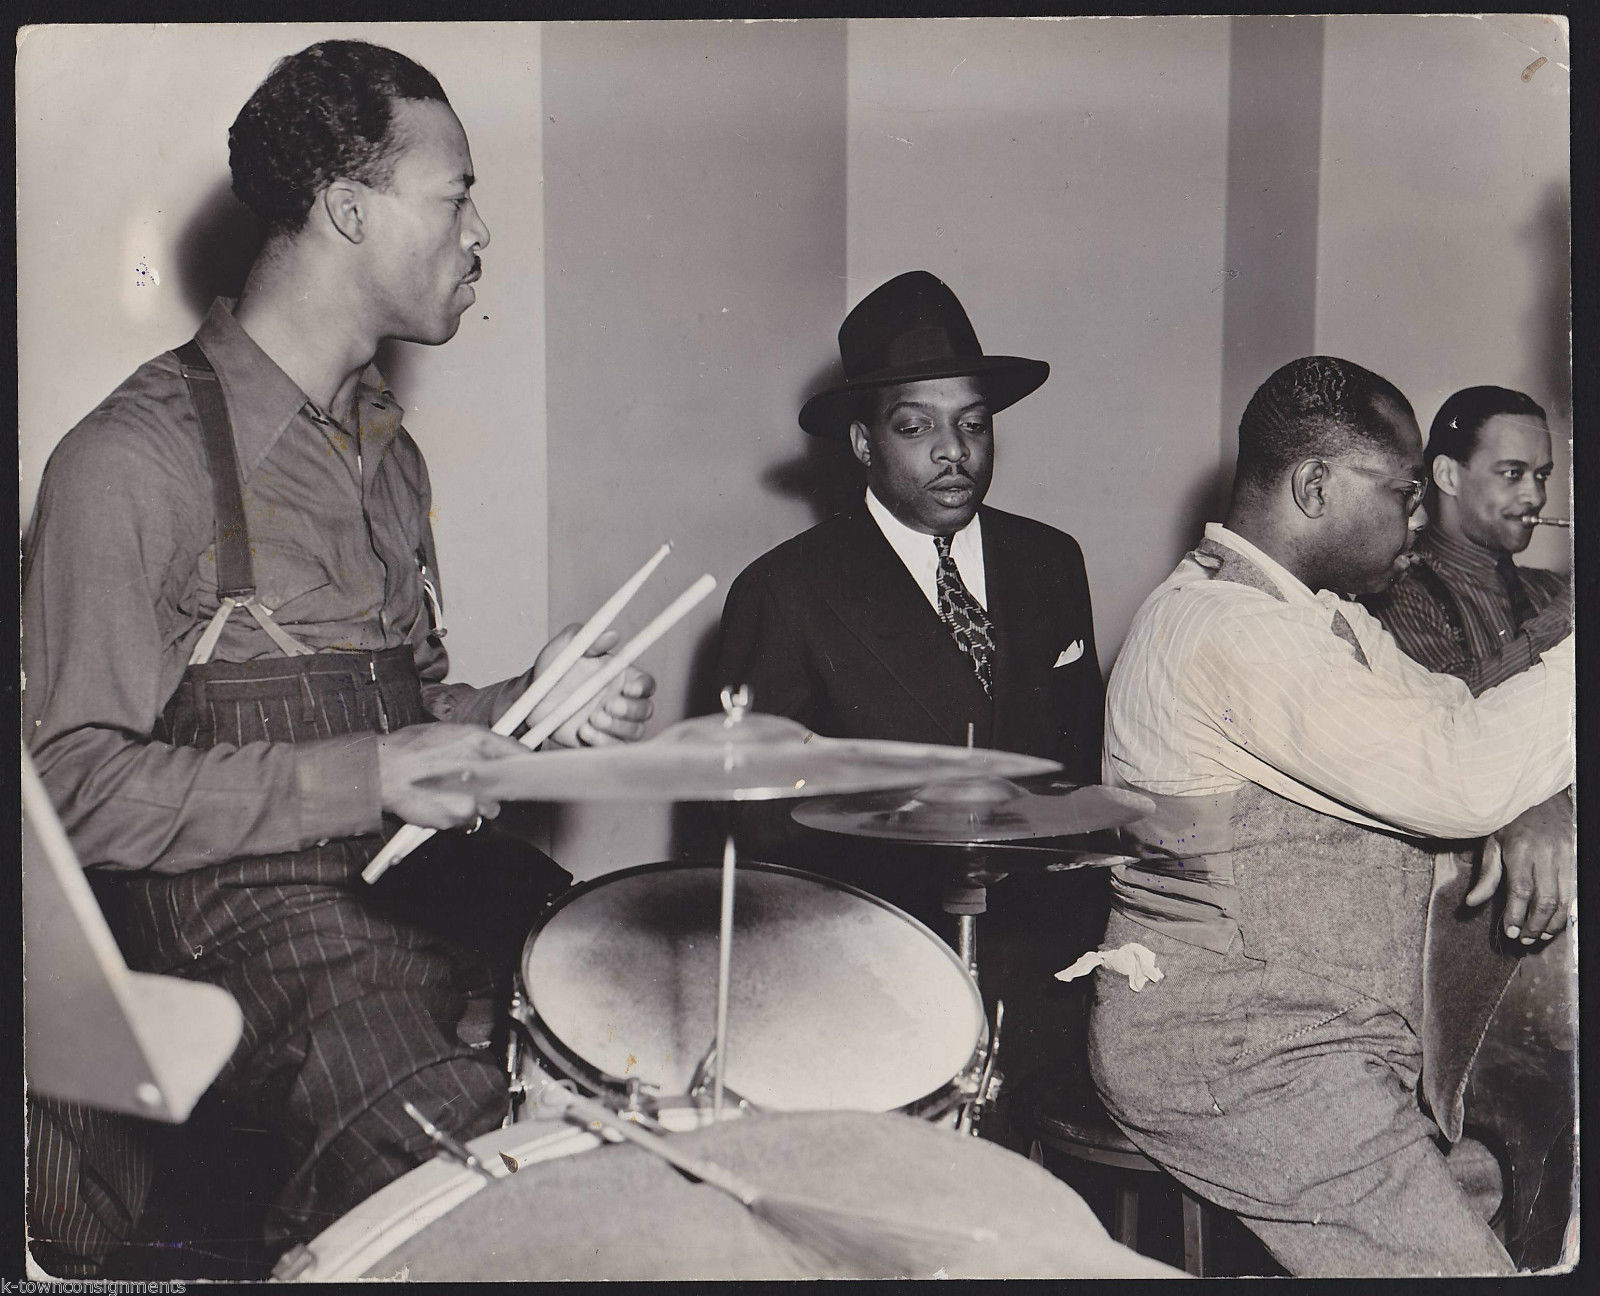 COUNT BASIE REHEARSAL 1941